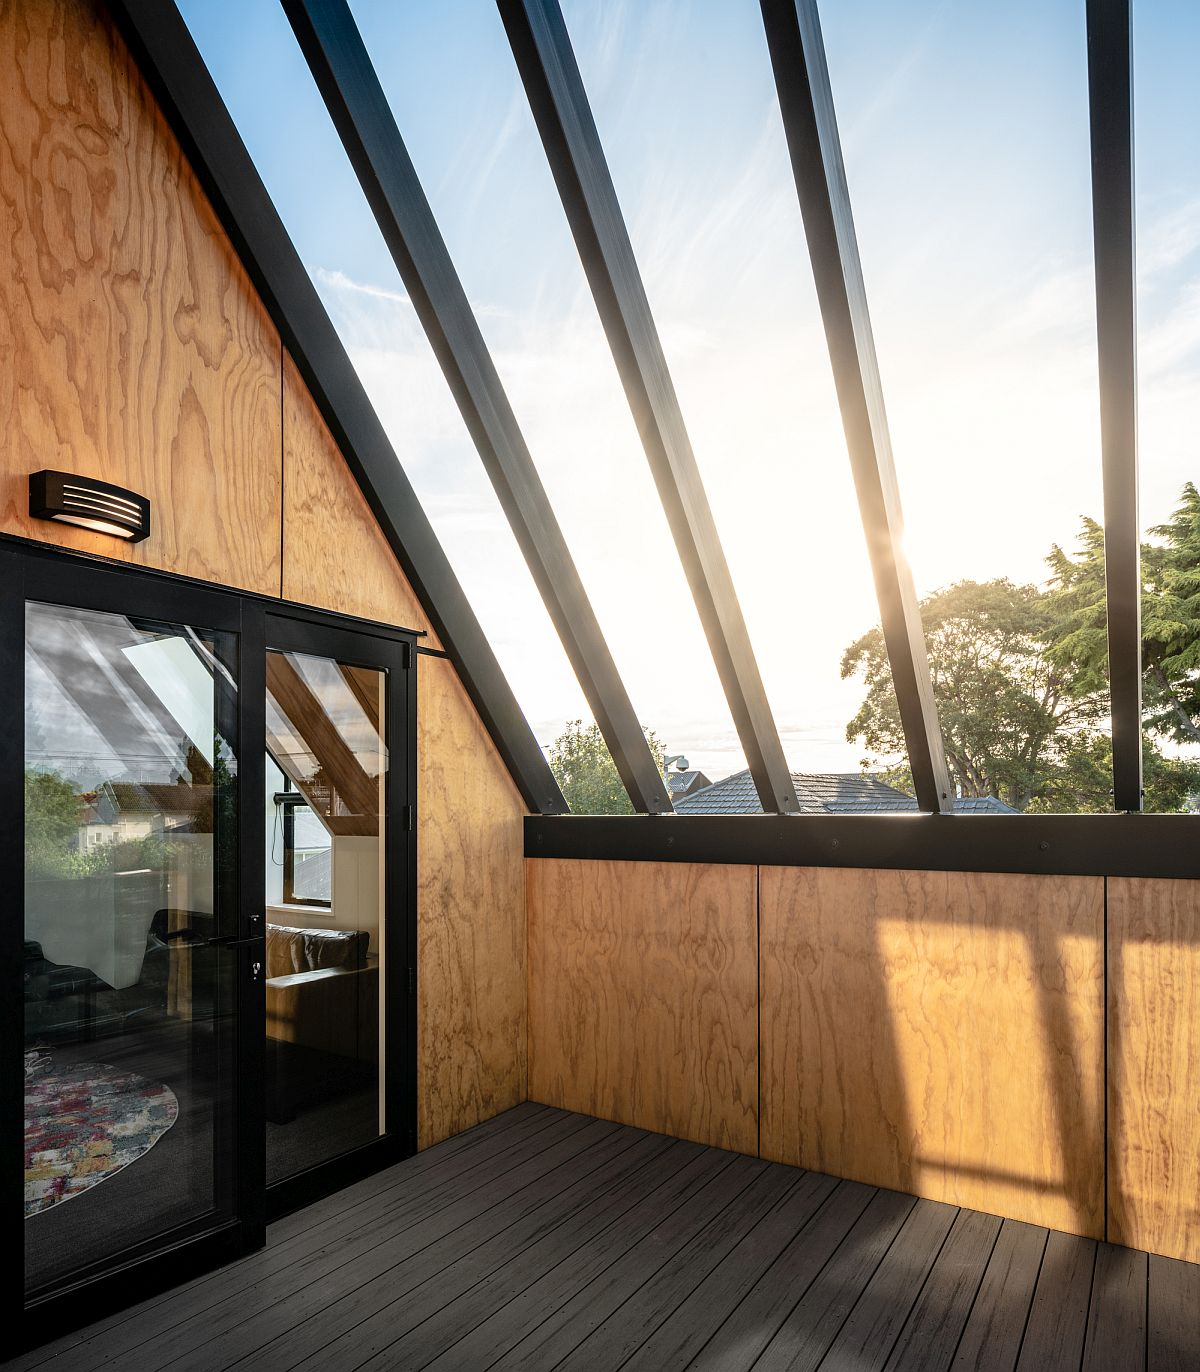 Sheltered-deck-of-the-house-with-ample-natural-light-provides-a-getaway-for-those-on-the-upper-level-47467